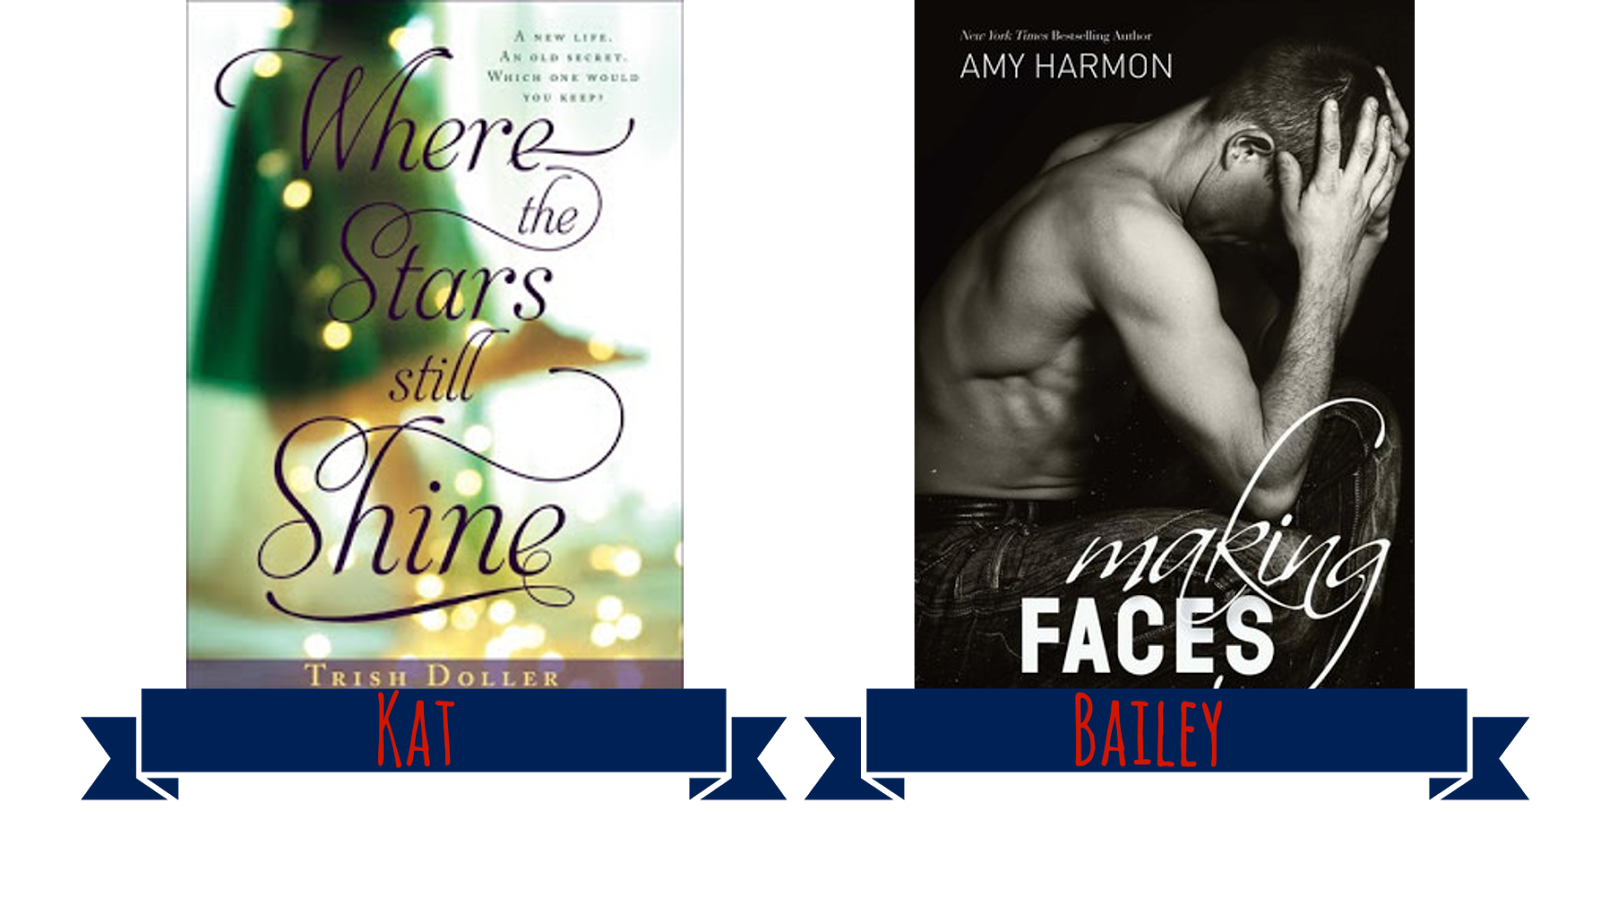 Where the Stars Still Shine + Making Faces book covers